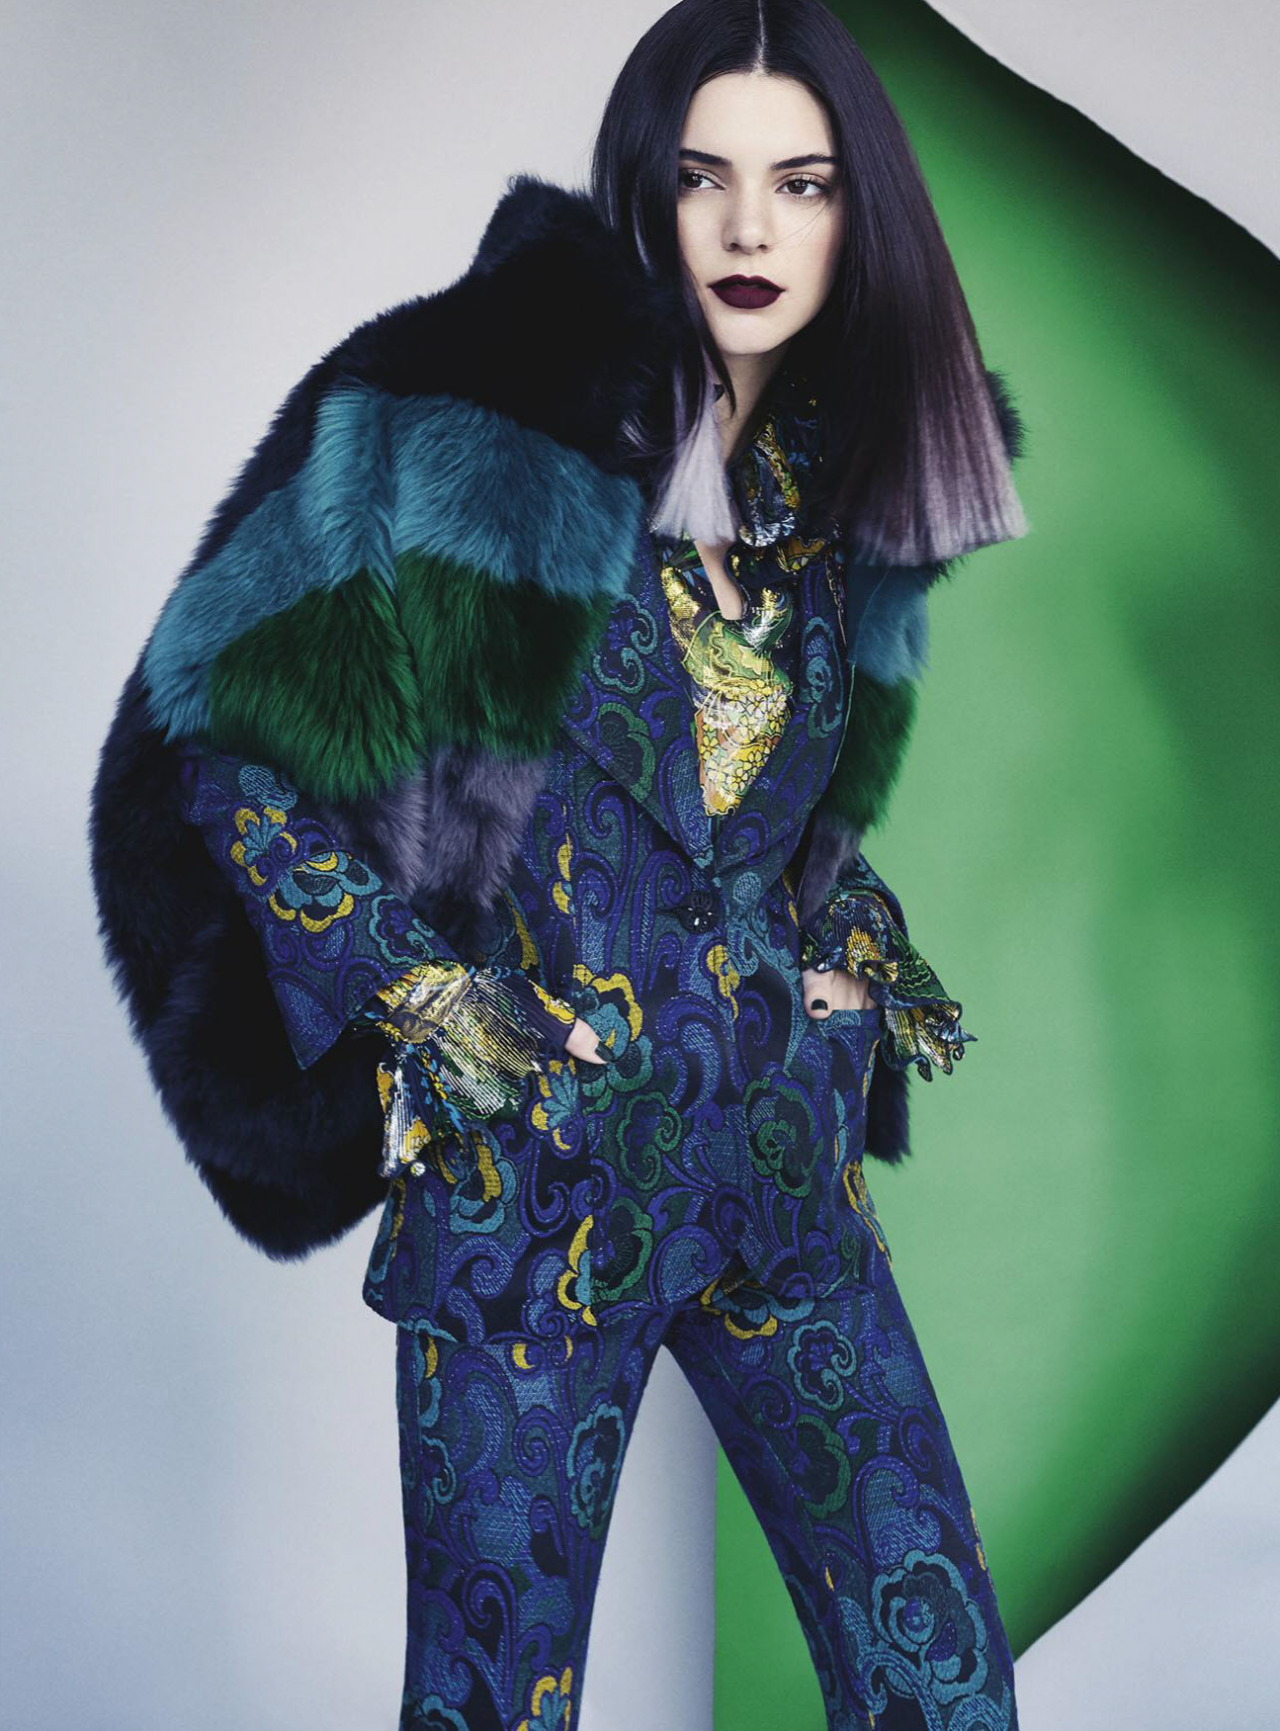 kendall-jenner-by-patrick-demarchelier-1